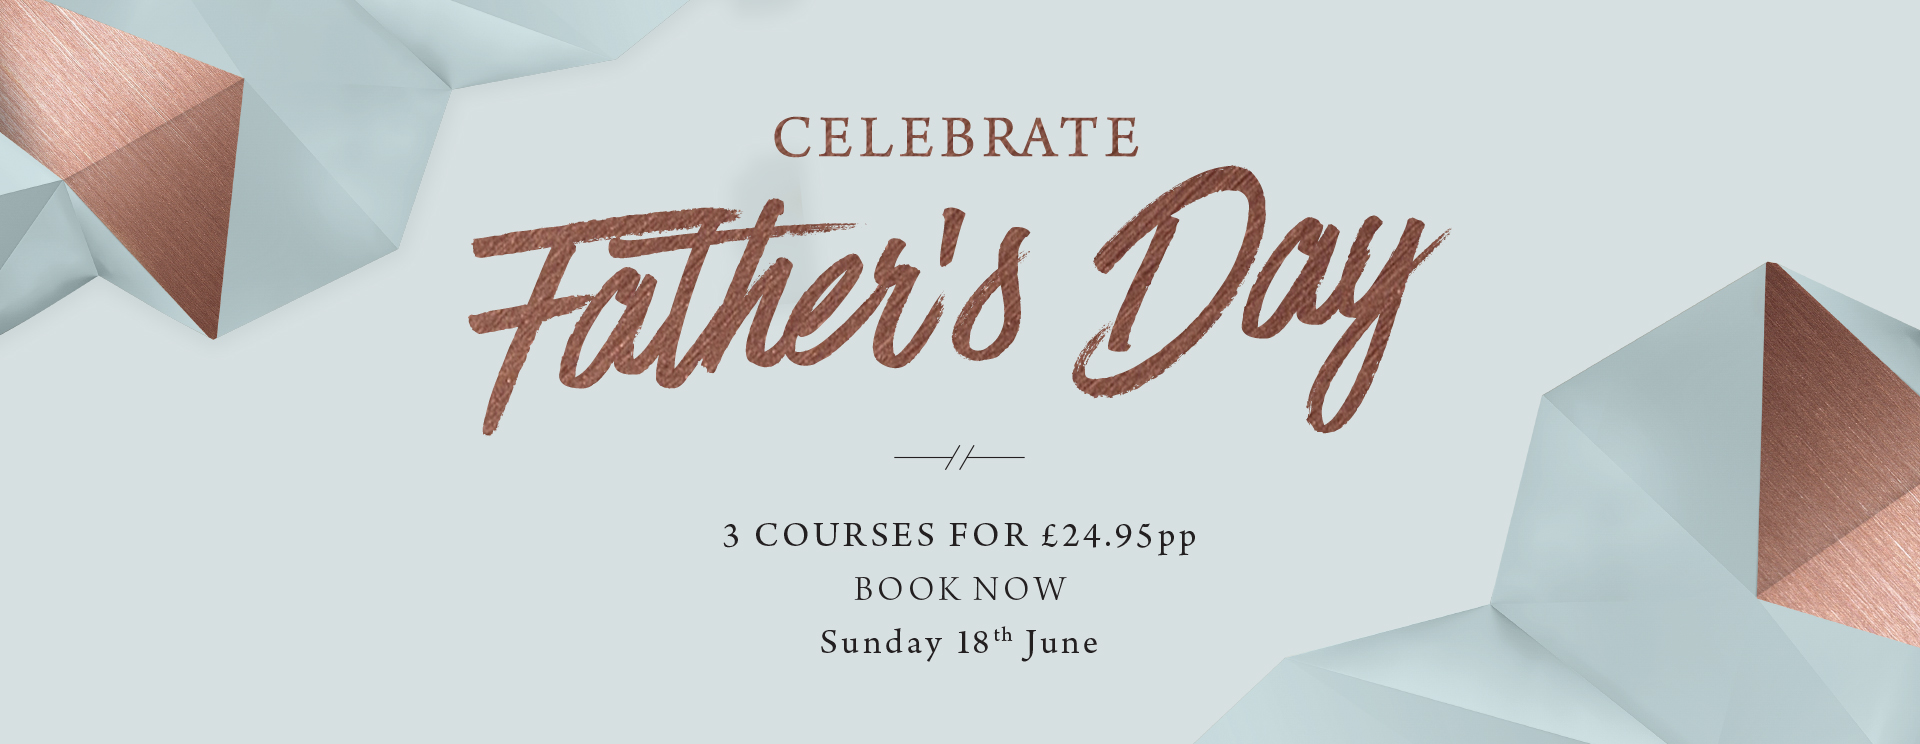 Father's Day at The Ferry - Book now